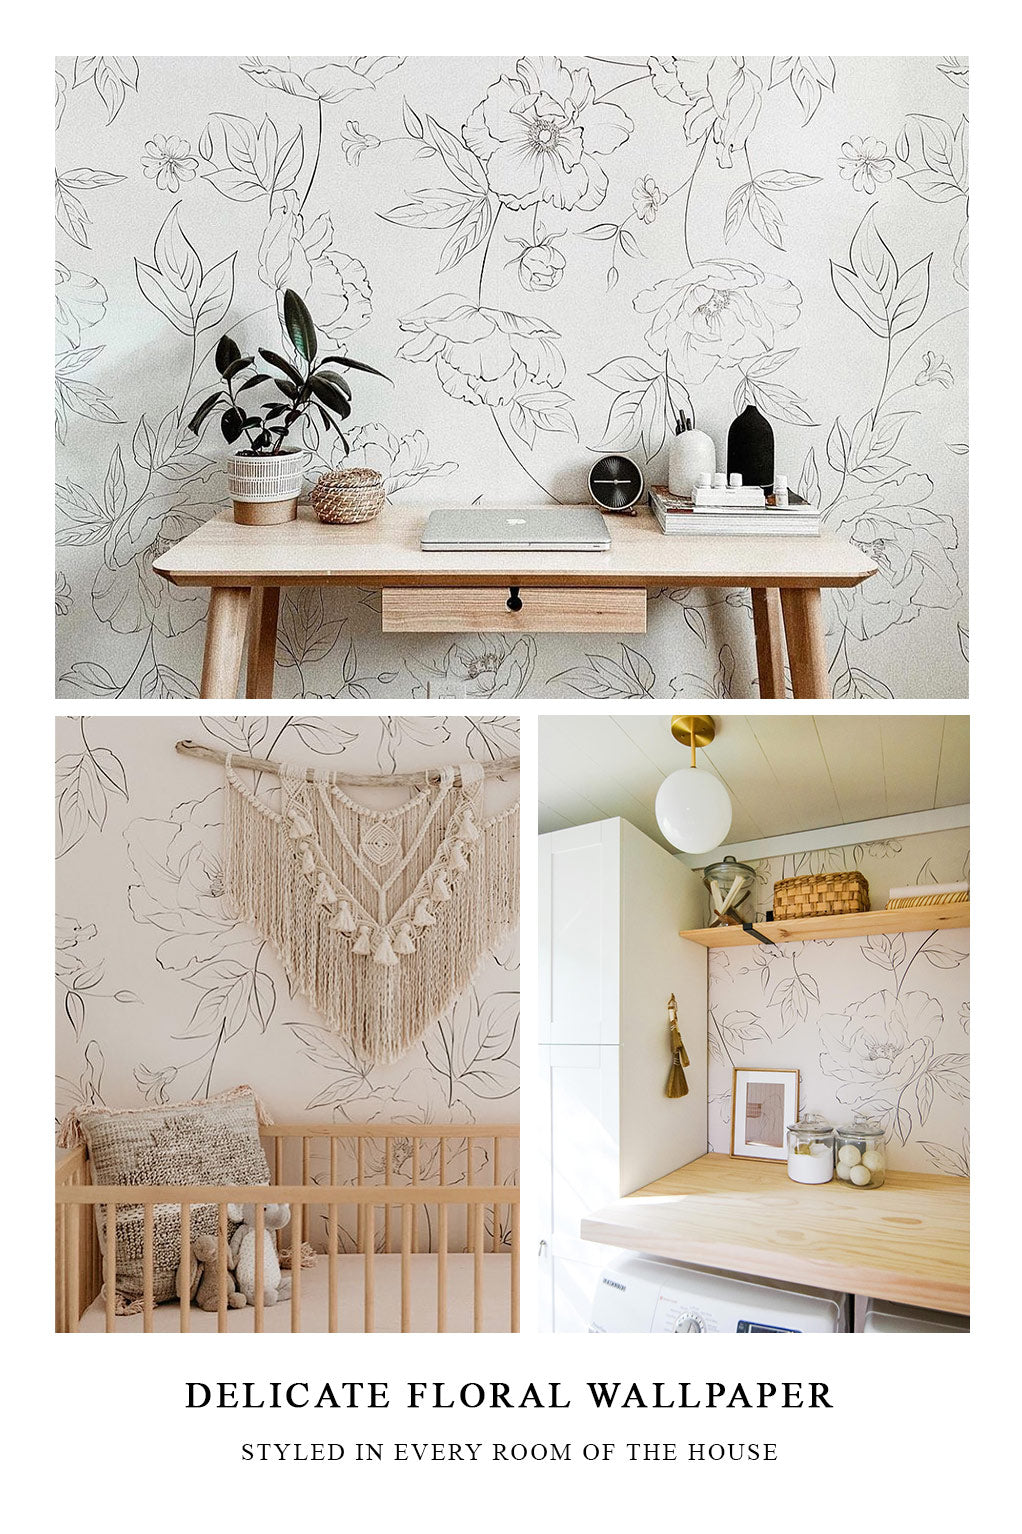 Oversized floral wallpaper styled in every room of the house in different interior styles